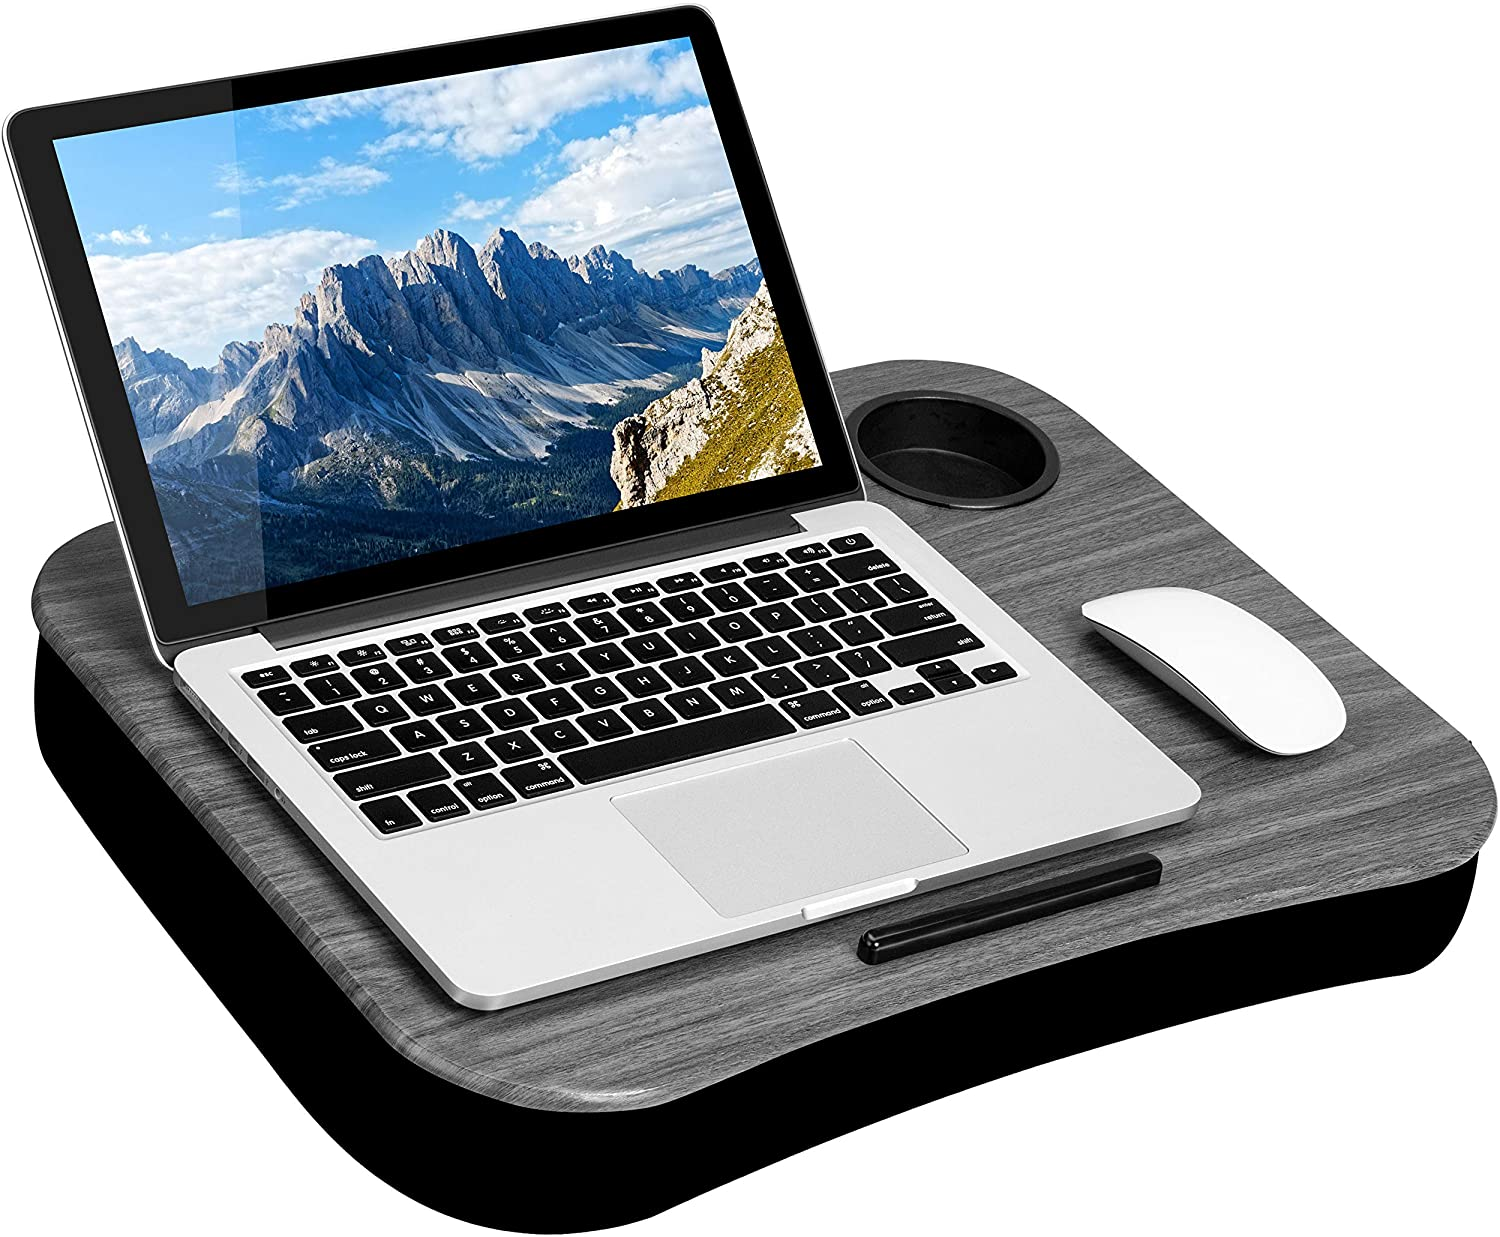 LapGear Cup Holder Lap Desk with Device Ledge Style No Fits up to 15.6 Inch Laptops Gray Woodgrain 46325